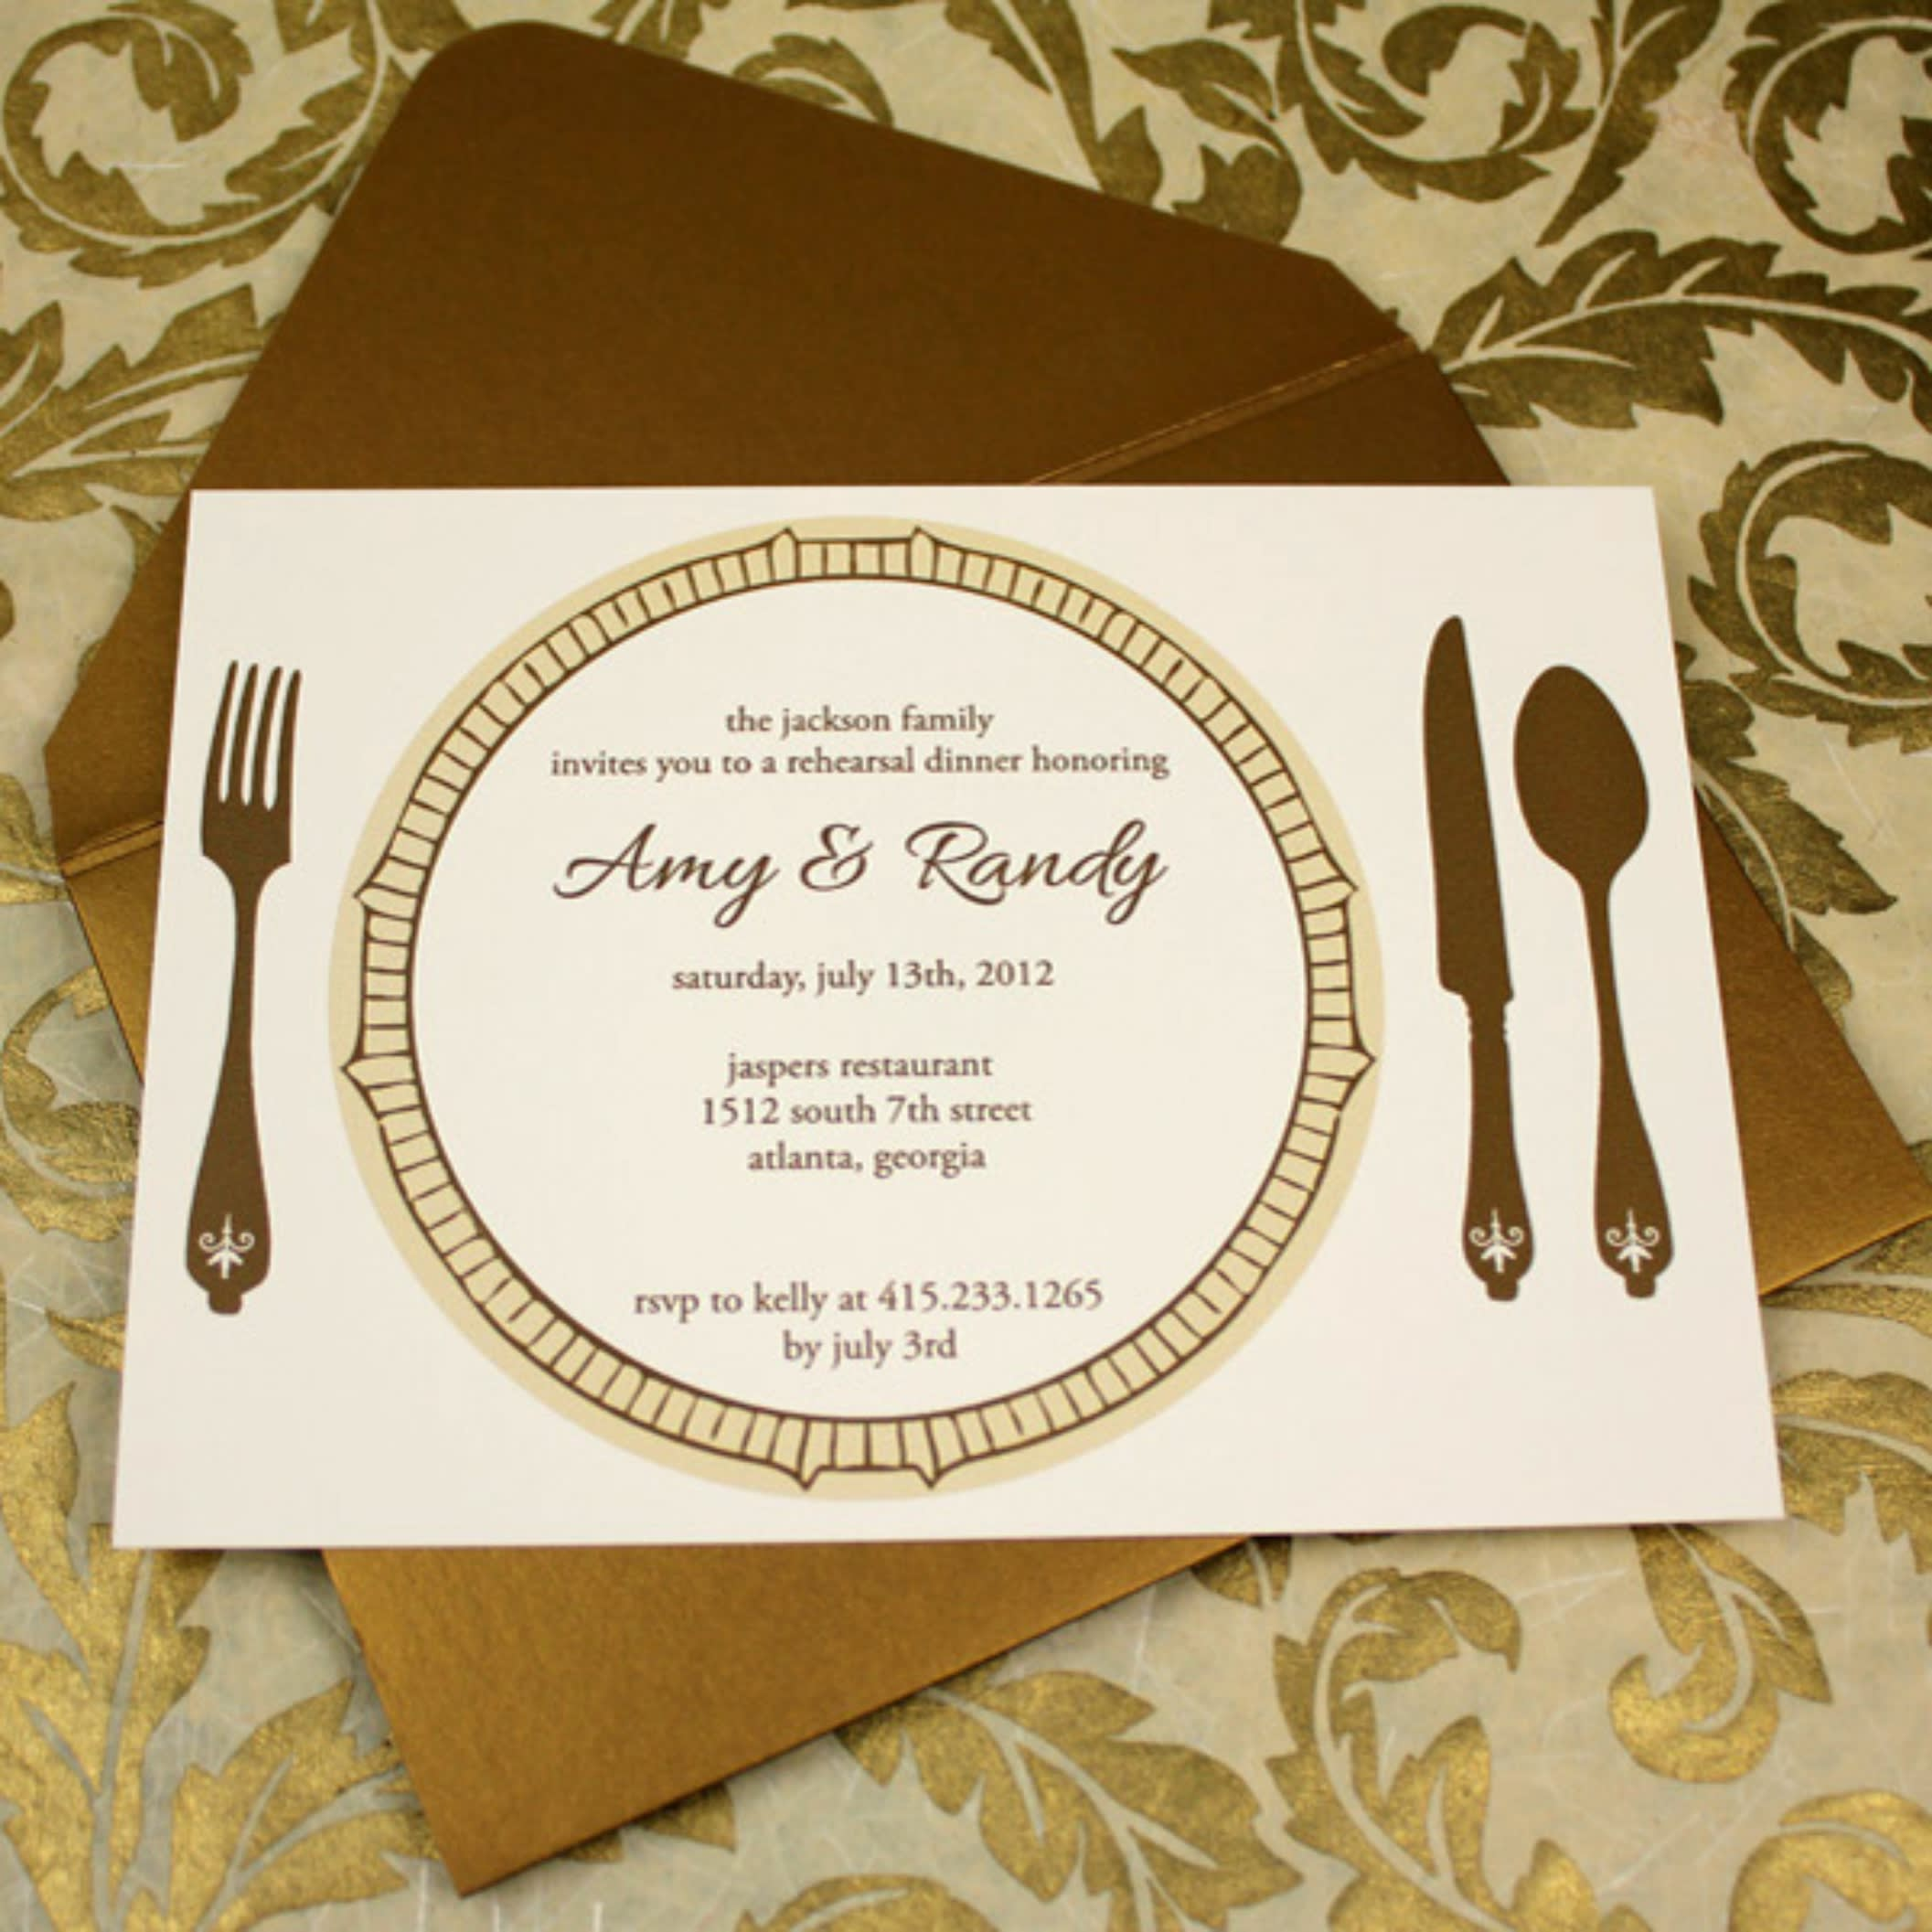 Create, dinner party invitation, save the date, rsvp card by Paulstan22 |  Fiverr